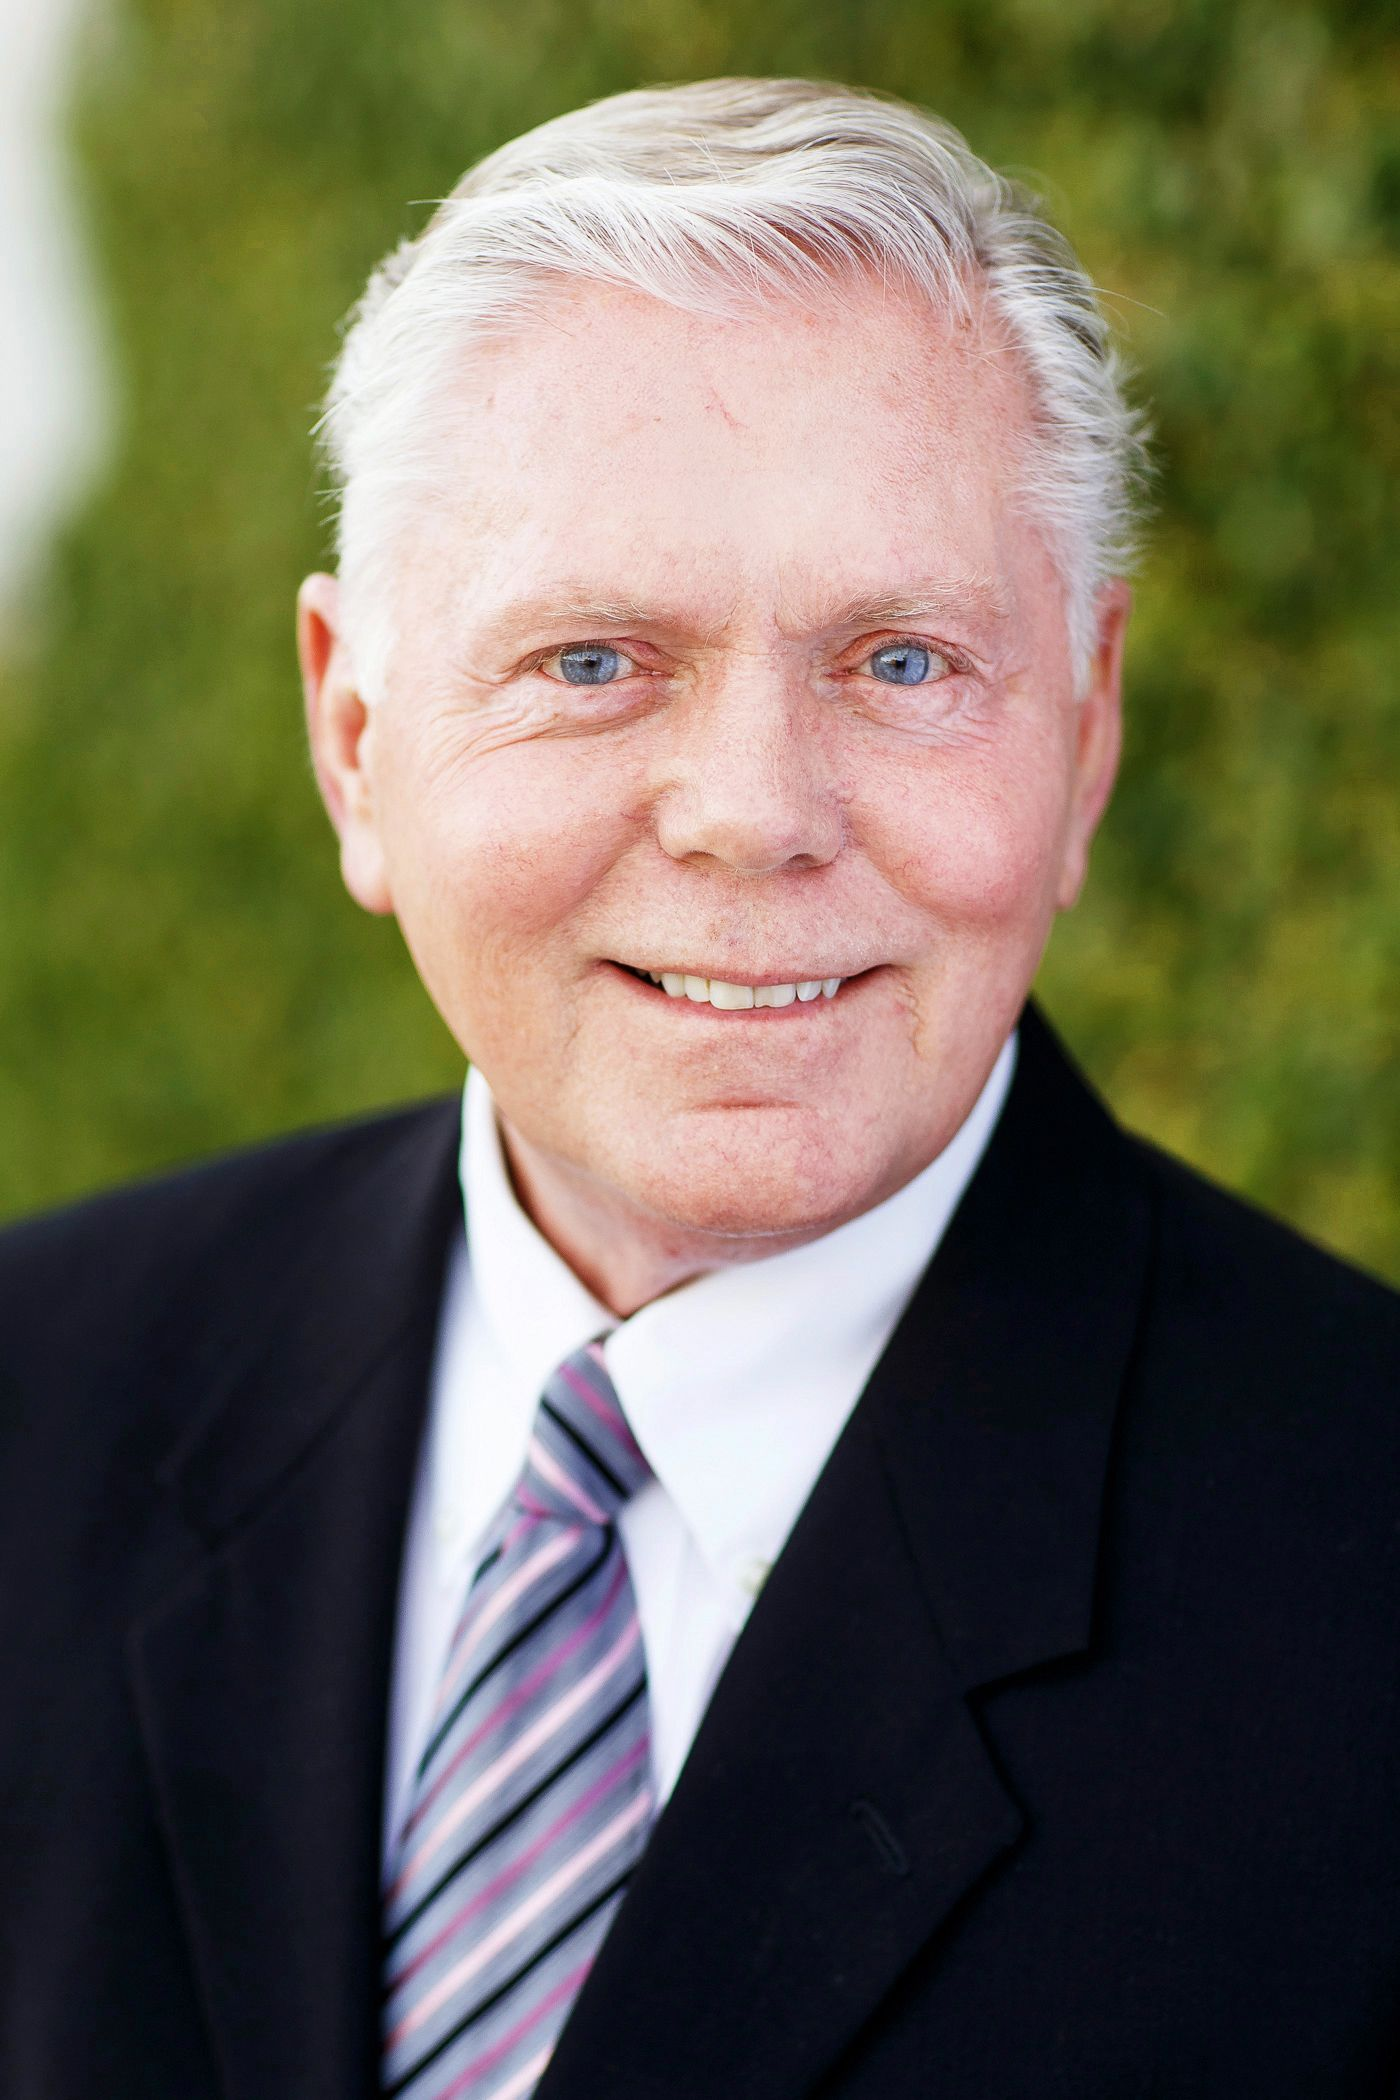 Randy Roth, Founder and President of Faith Network of the East Bay